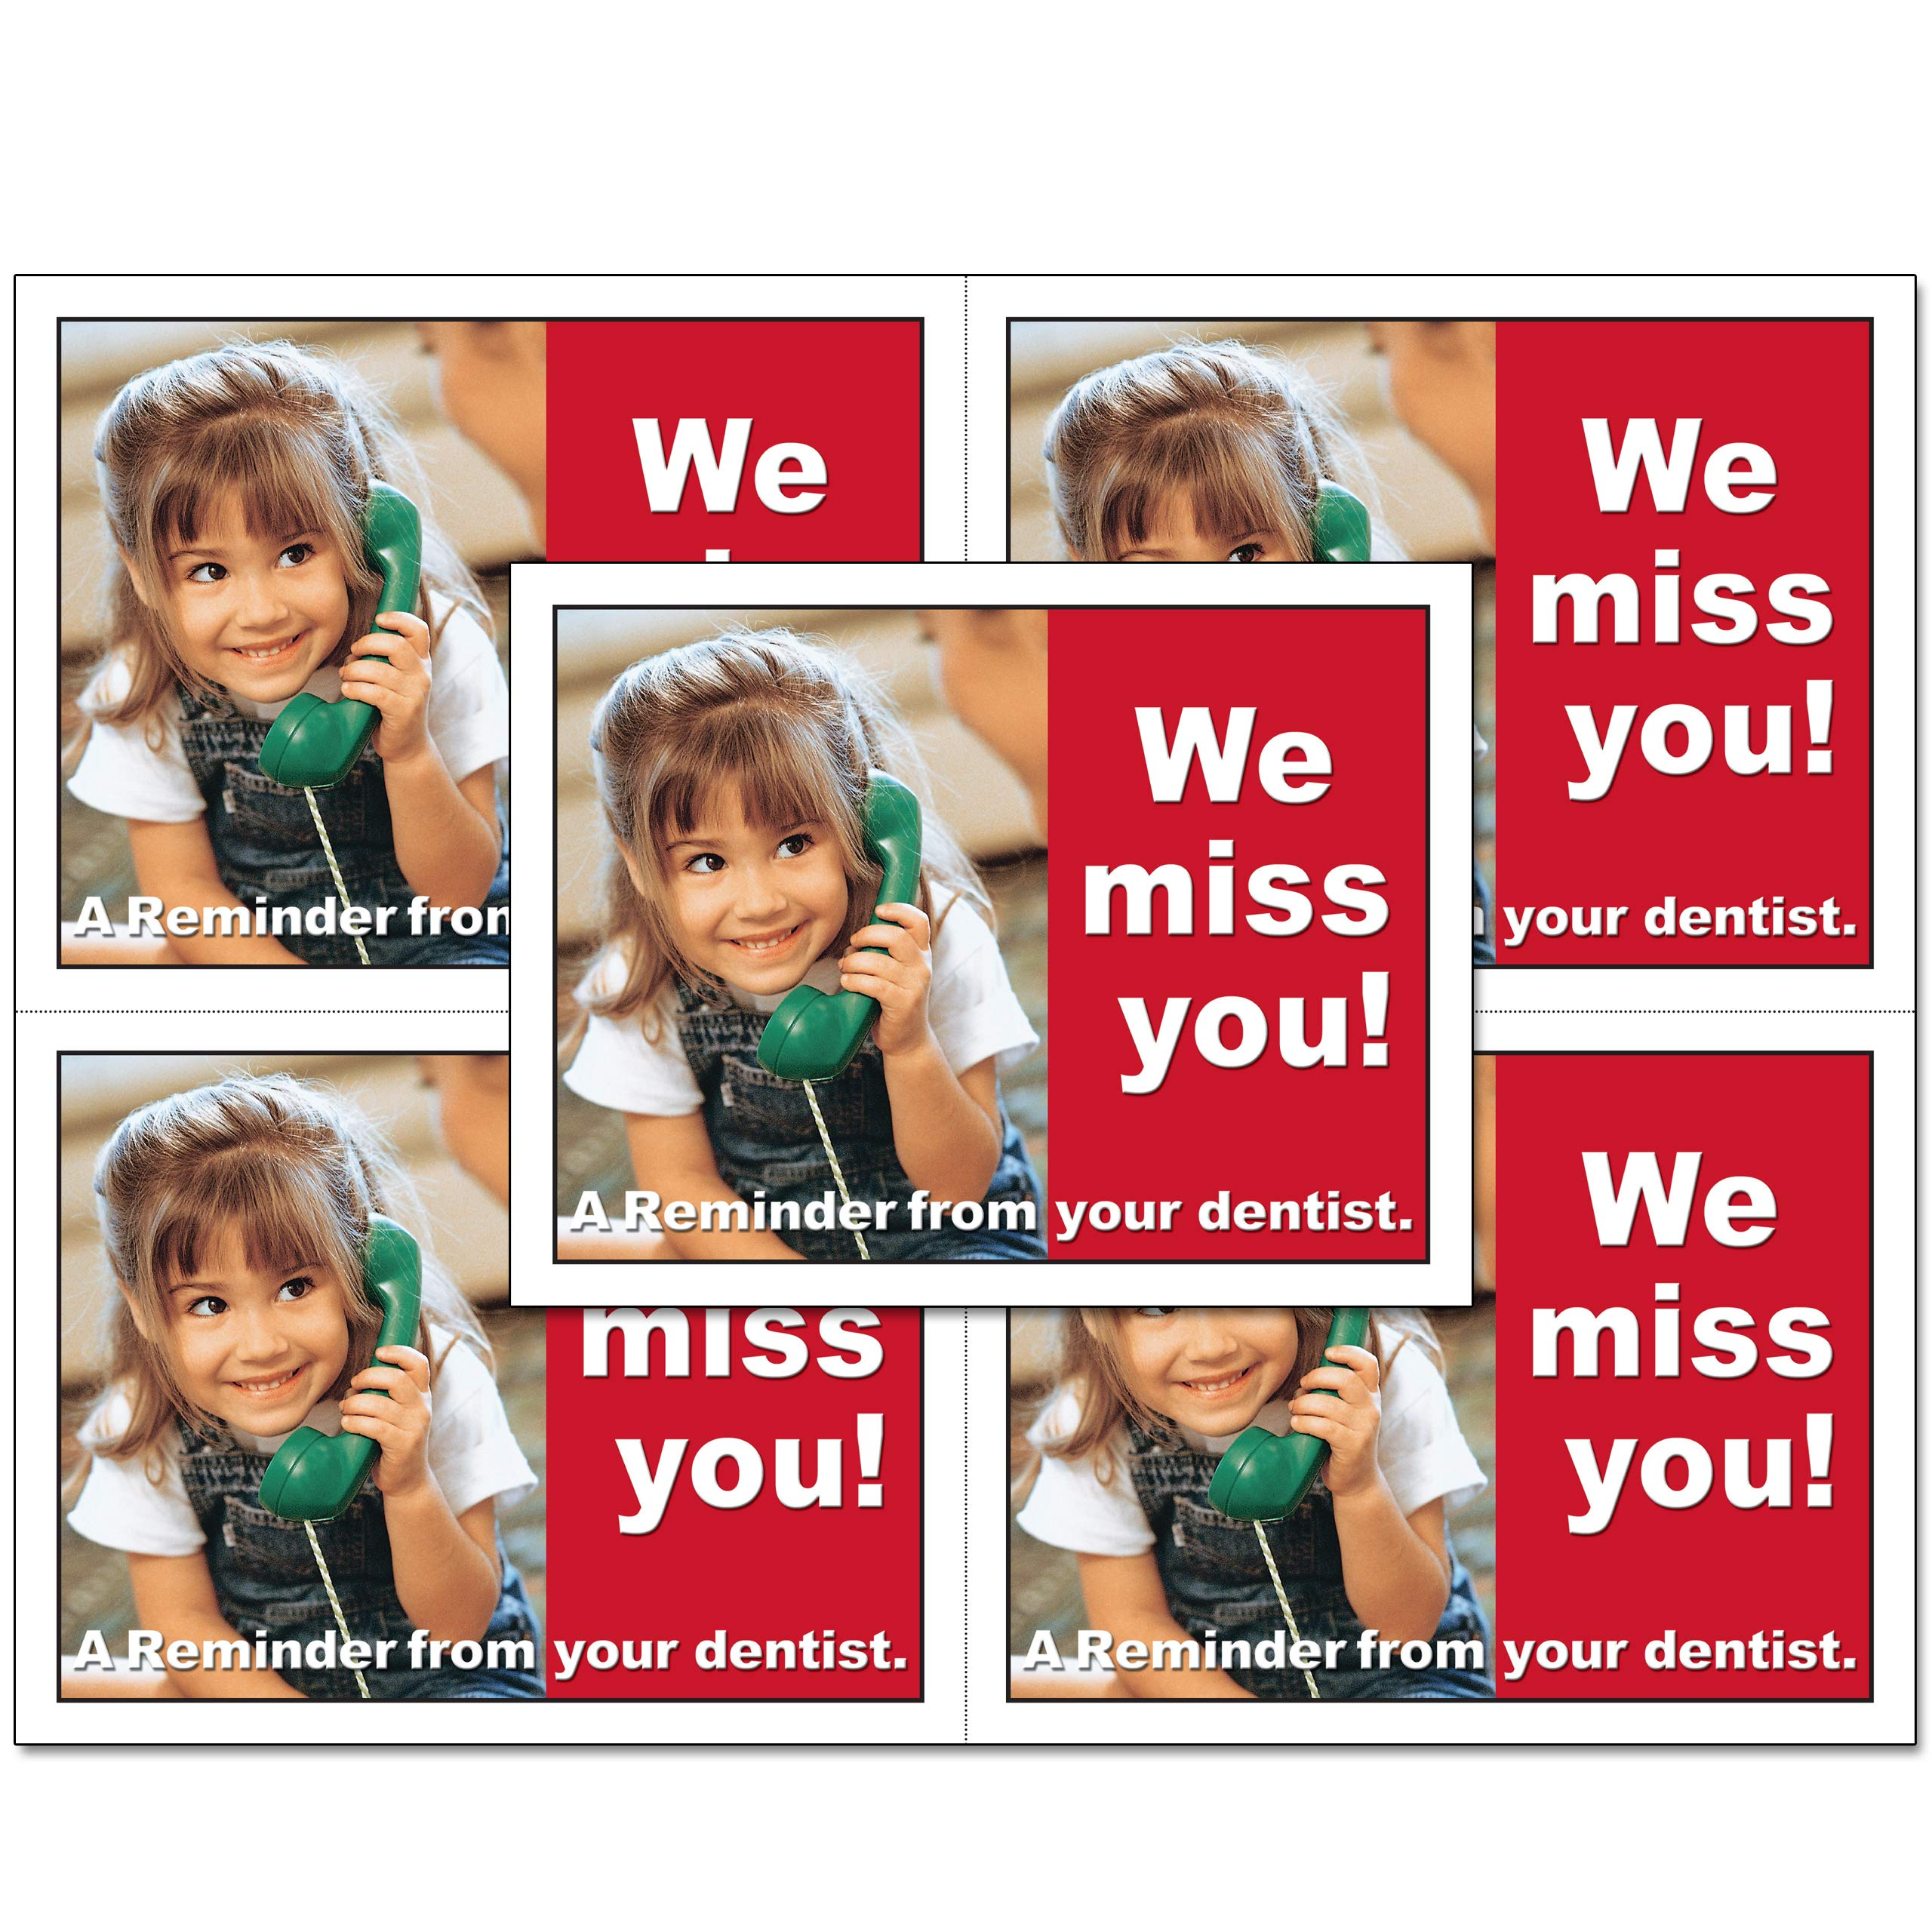 Laser Reminder Postcards, Dental Appointment Reminder Postcards. 4 Cards Perforated for Tear-Off at 4.25'' x 5.5'' on an 8.5'' x 11'' Sheet of 8 Pt Card Stock. DEN103-LZS (500)